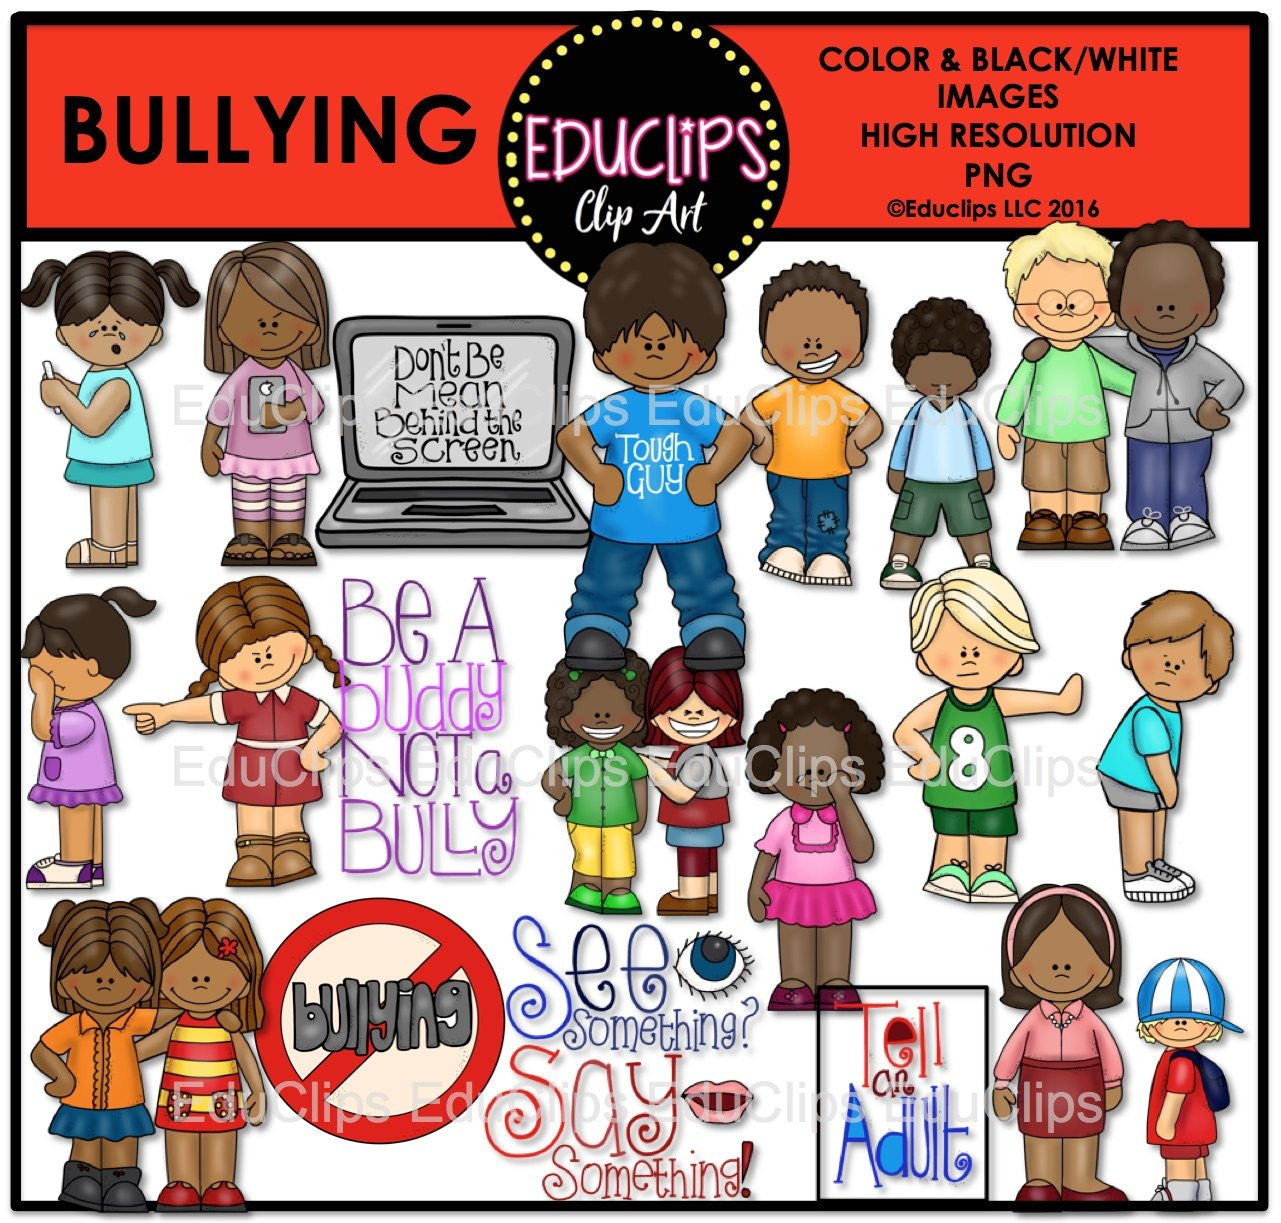 Bullying clipart physical contact. Clip art bundle color